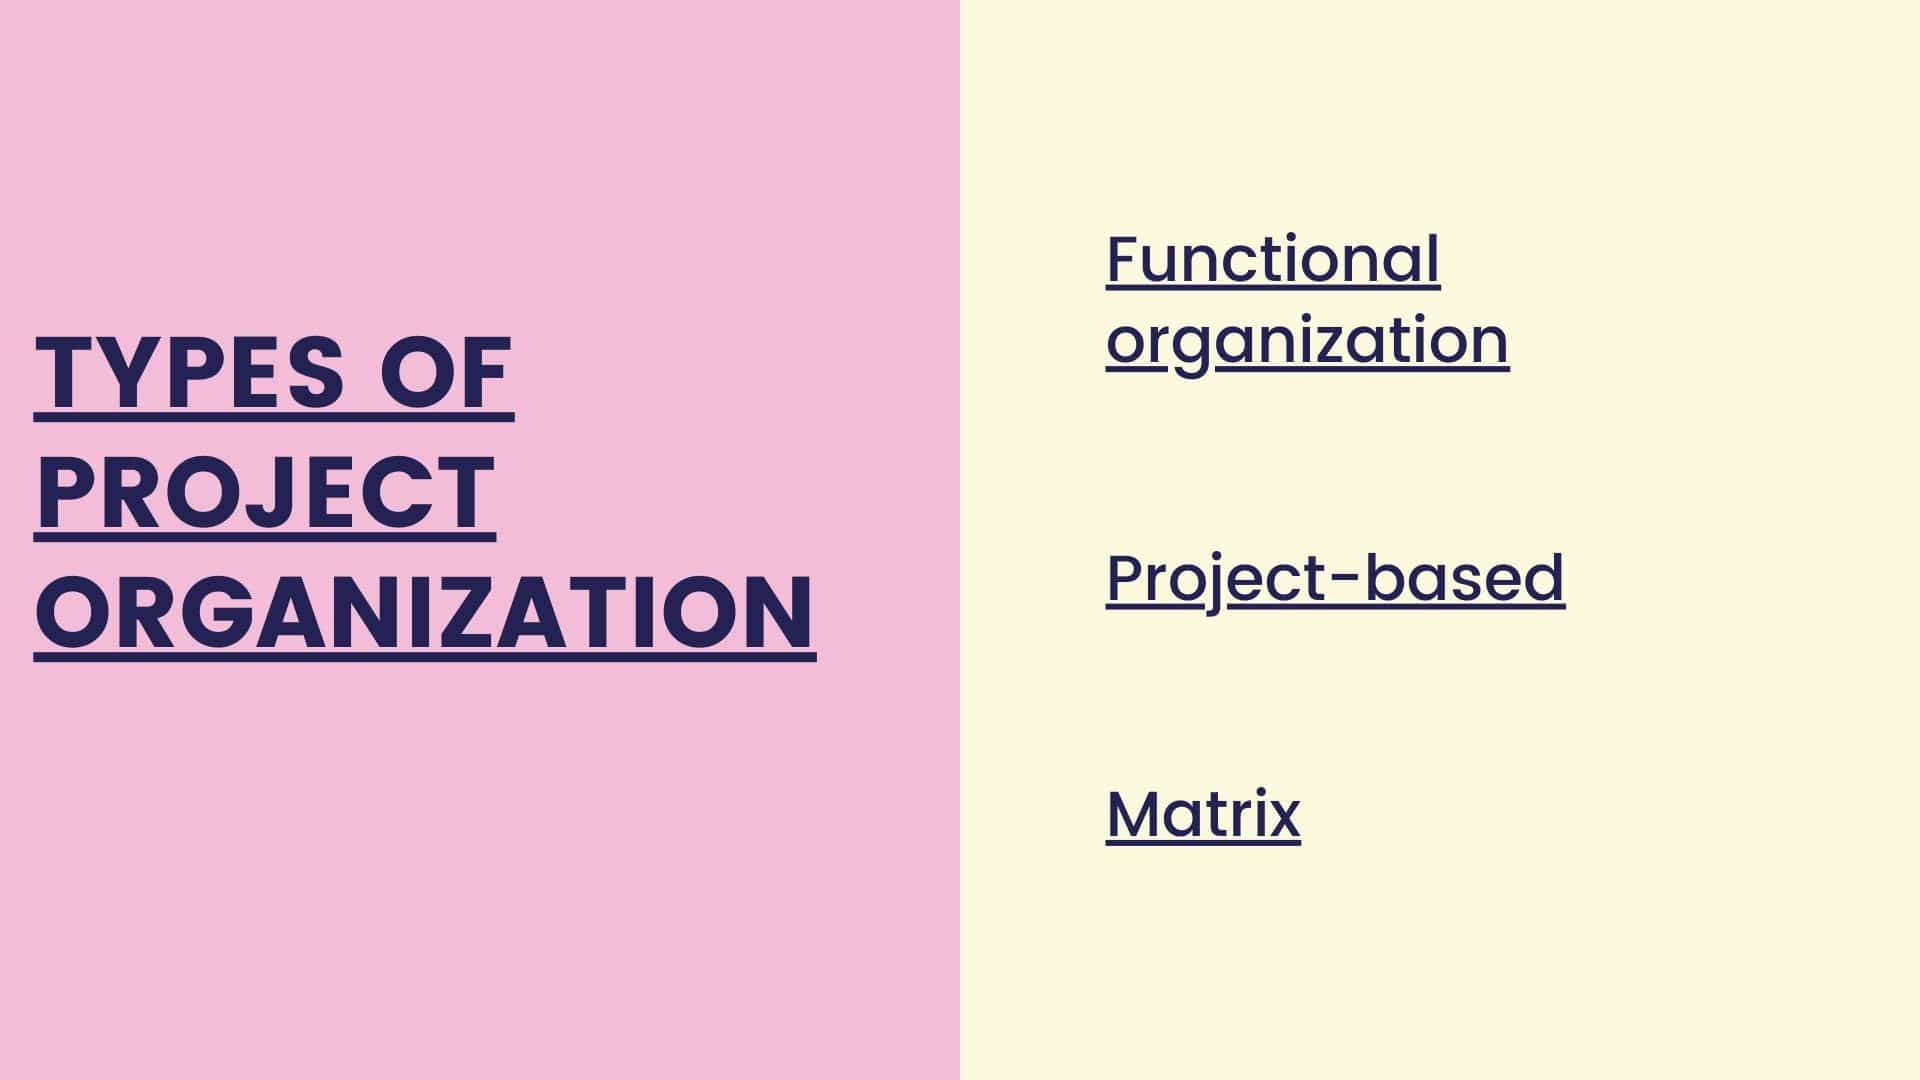 Types of project organization